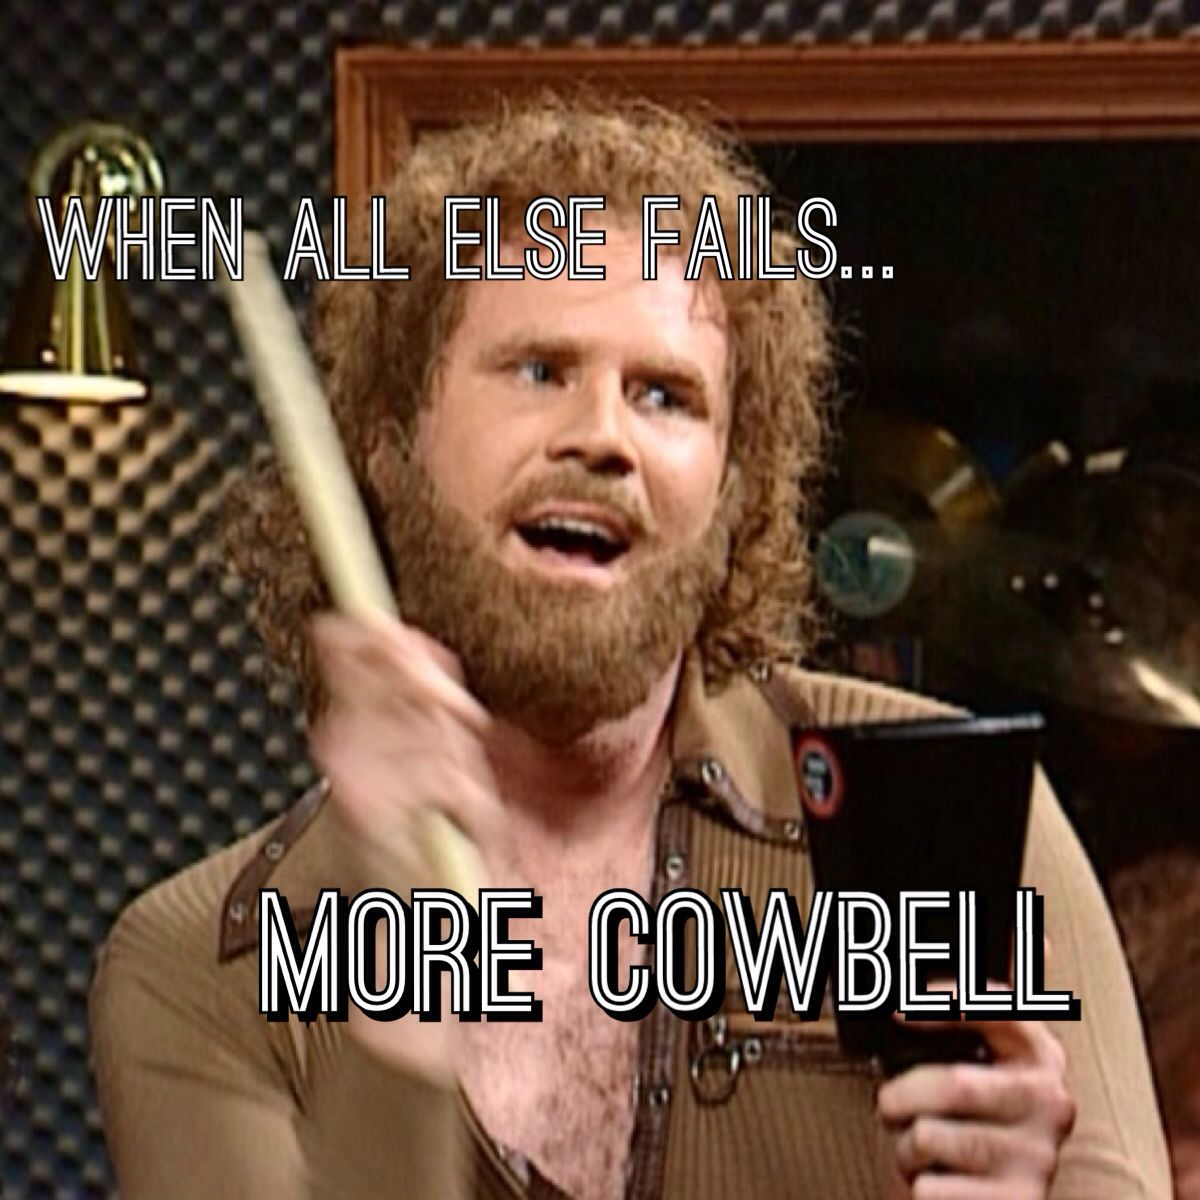 When All Else Fails More Cowbell Best Snl Skits More Cowbell Cow Bell